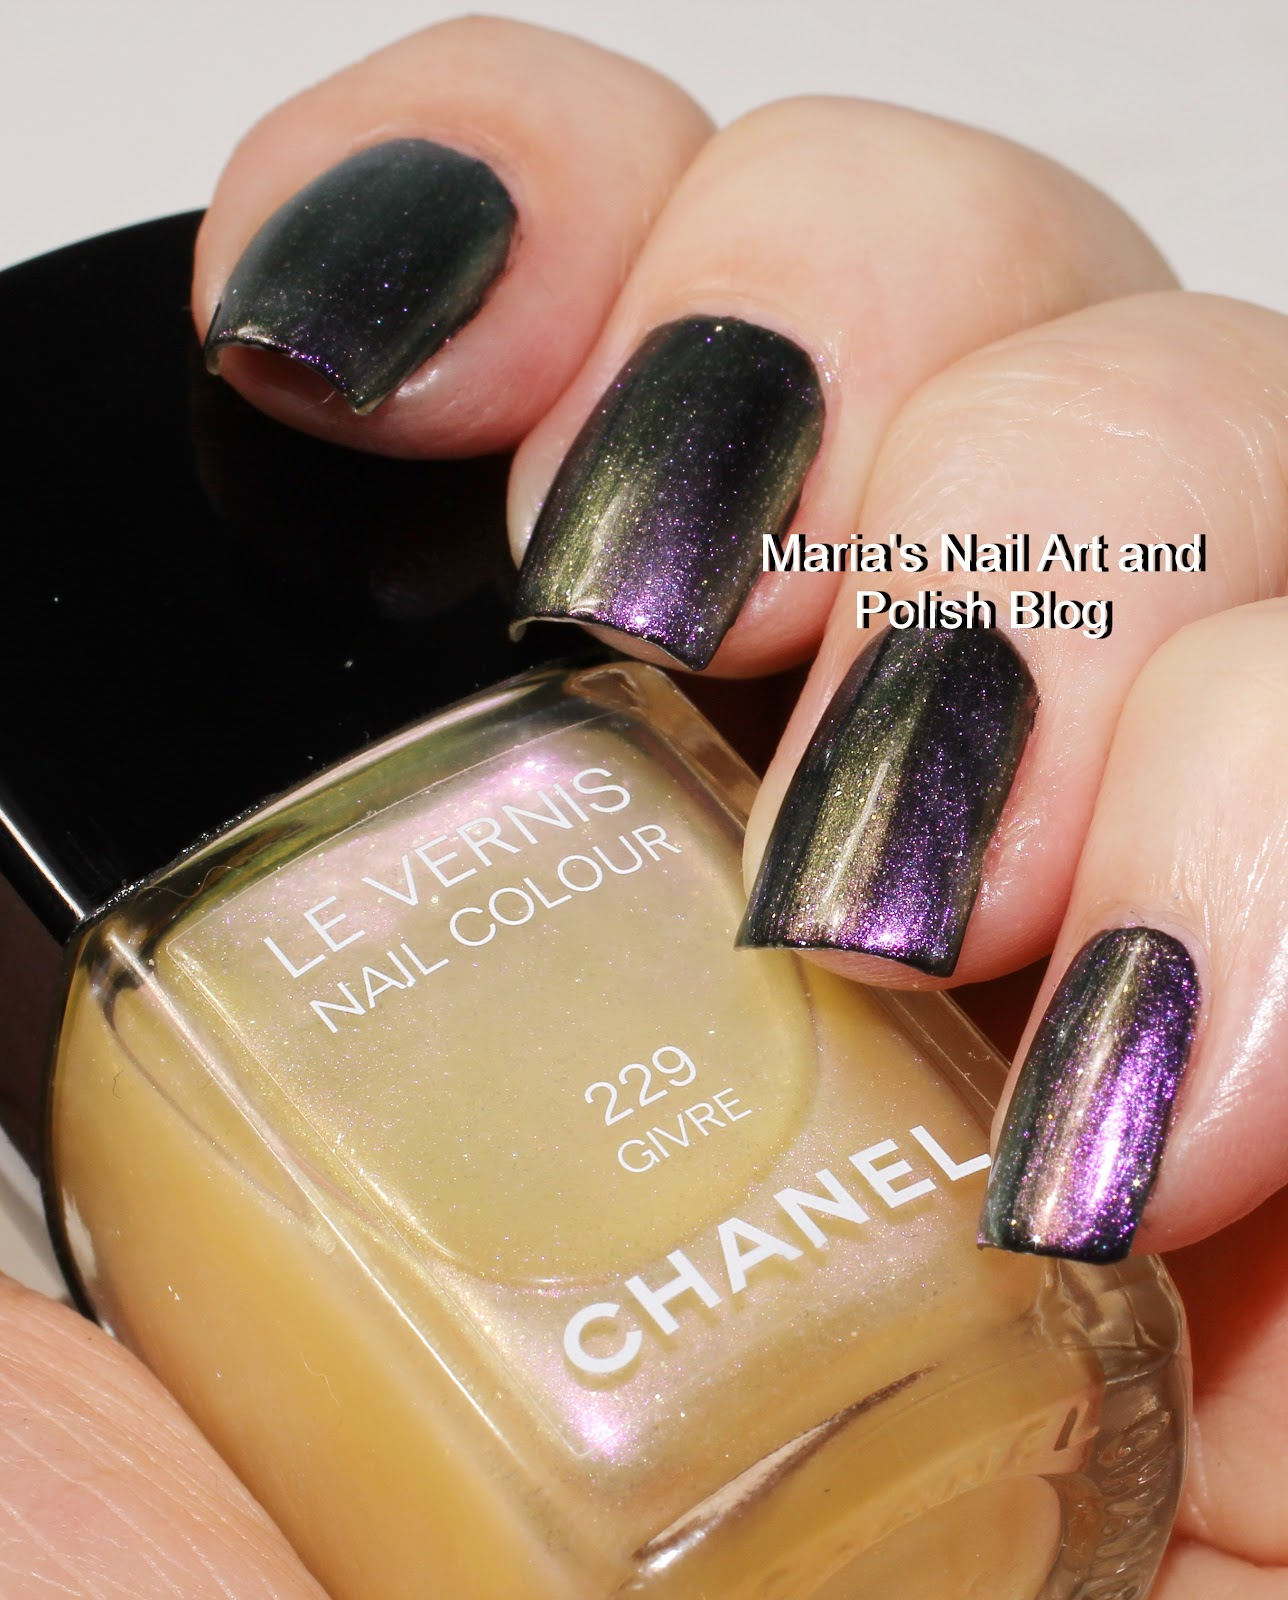 Marias Nail Art And Polish Blog Chanel Givre 229 Swatches